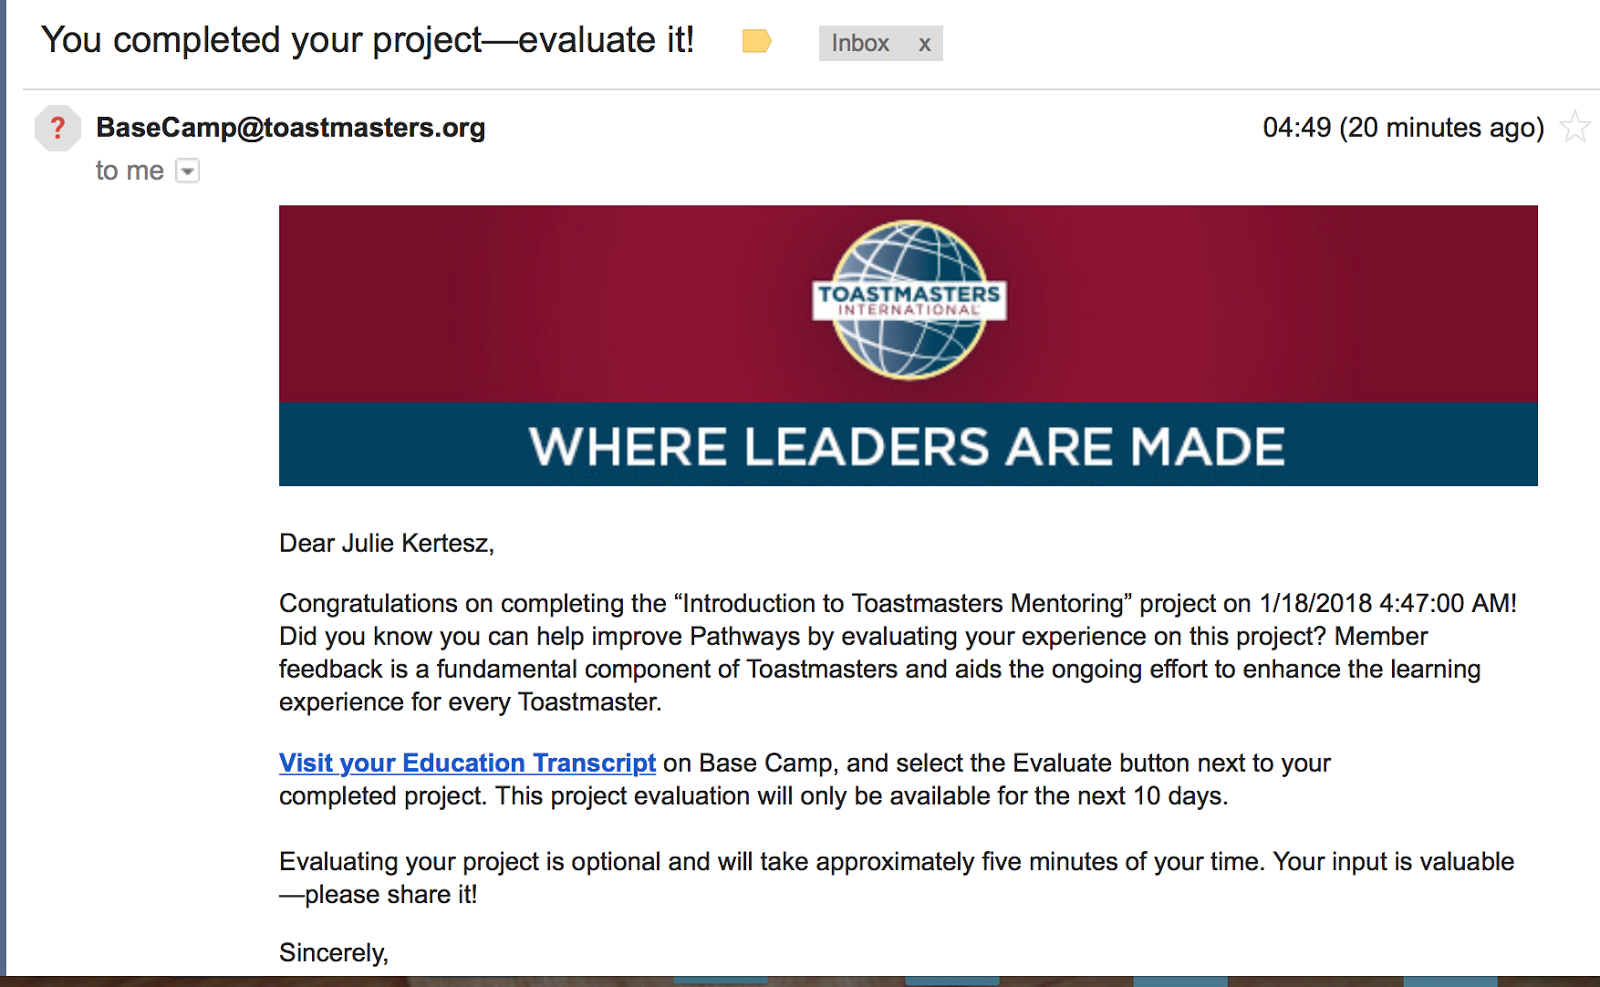 "Don't Go Over Time, Rest Great) I Received This Letter From The  Basecamp@toastmasters.org (Asking Me To ""evaluate Them"", The Project I Just  Finished)"